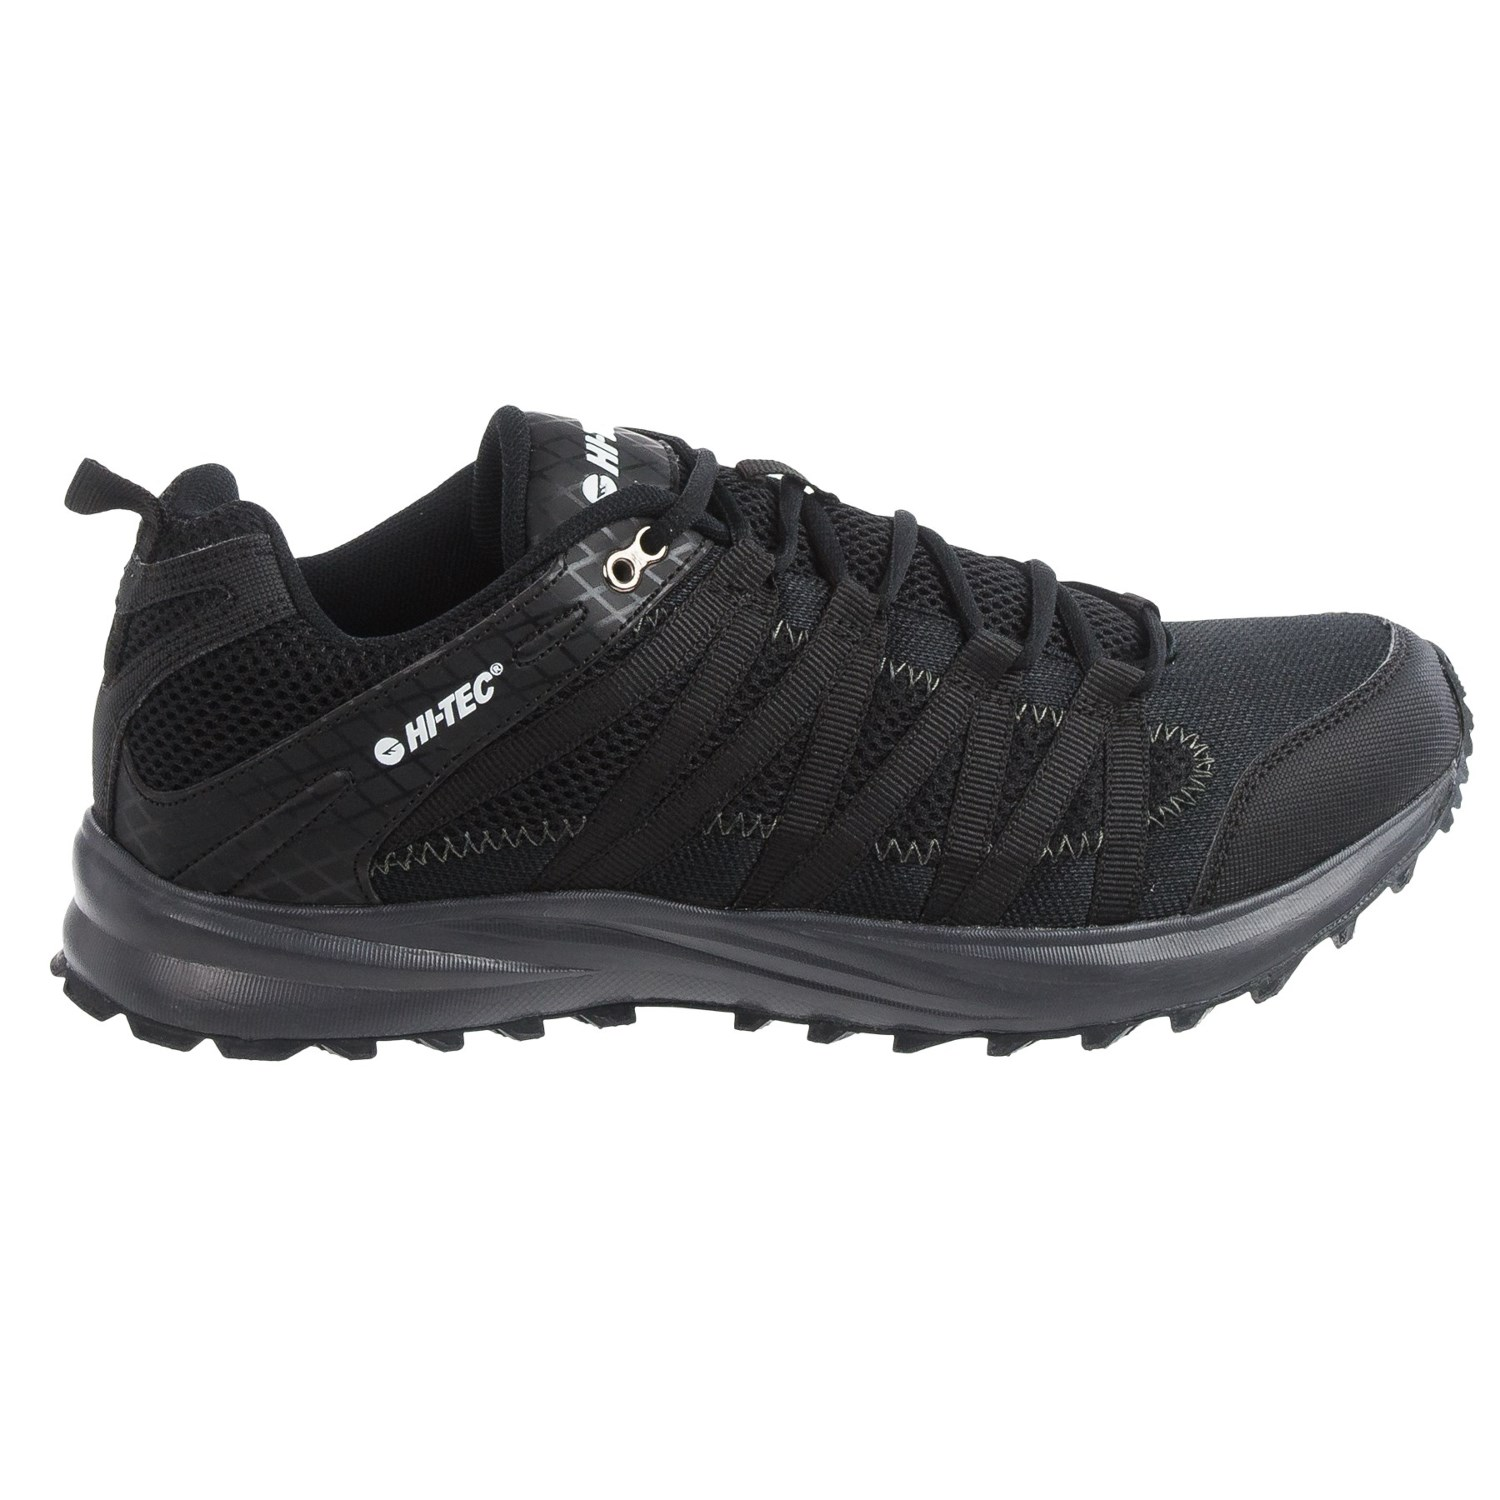 Hi Tec Sensor Trail Lite Trail Running Shoes